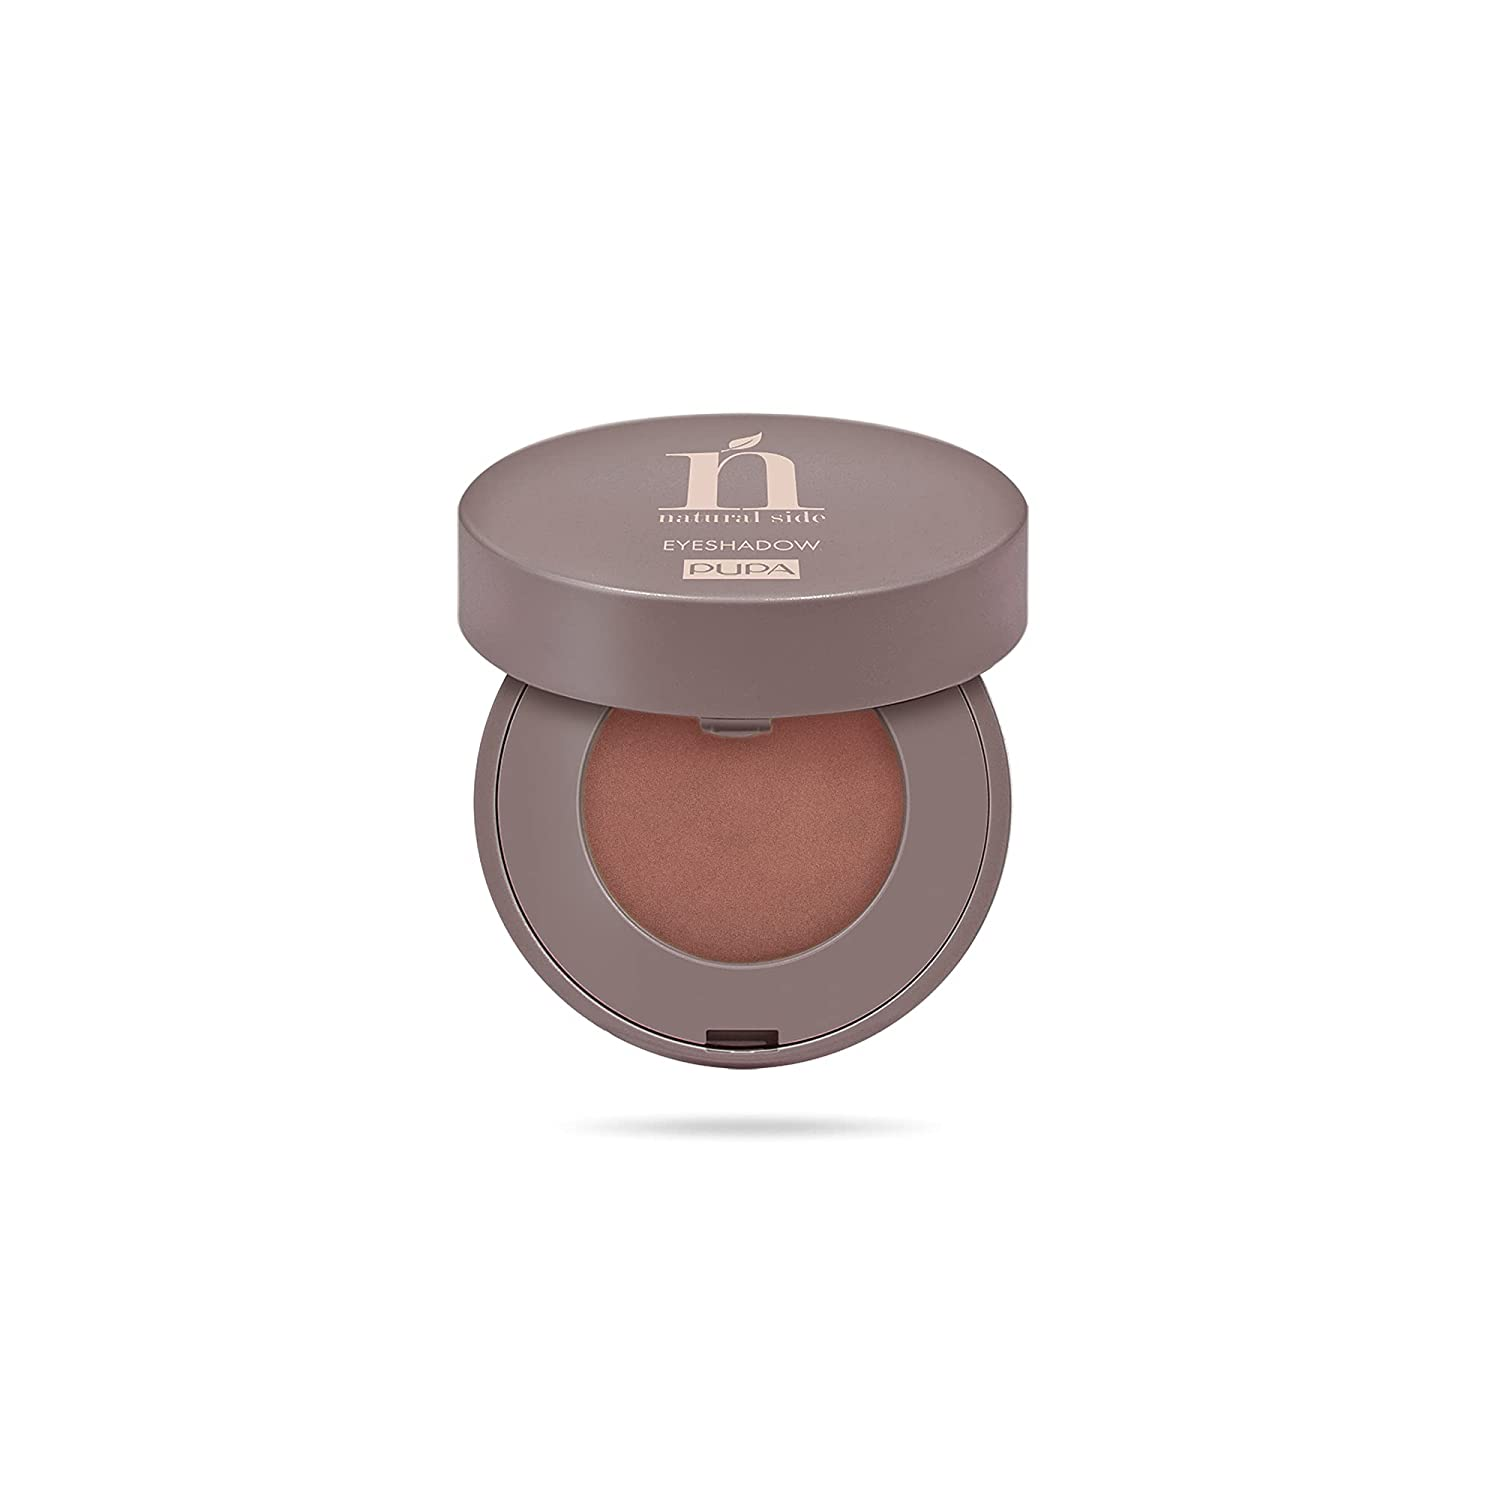 Natural Side Compact Eyeshadow – 007 Copper Fever by Pupa Milano for Women – 0.07 oz Eye Shadow